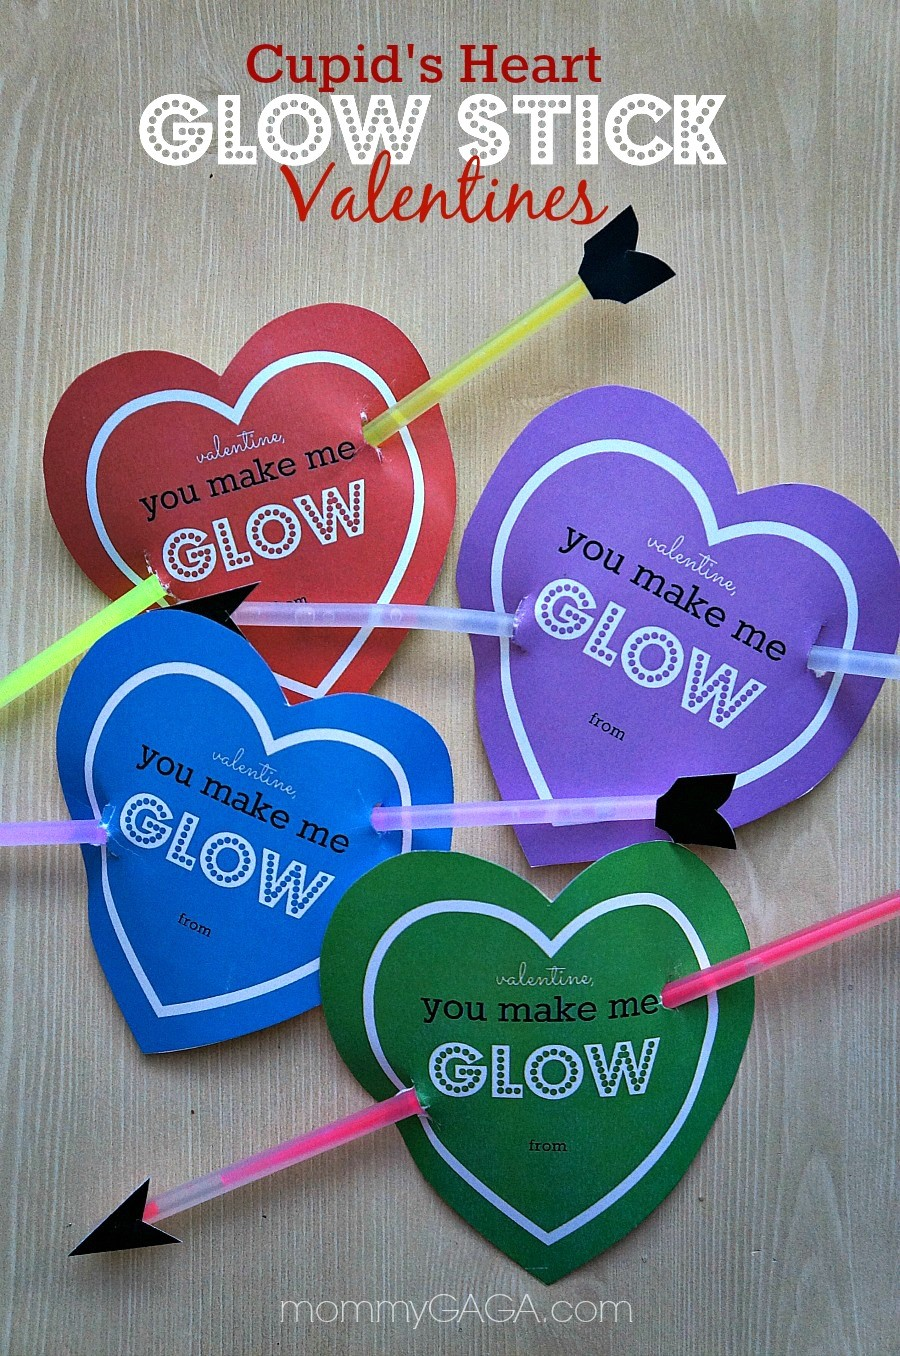 Homemade Valentines for Kids, Cupid's Heart Glow Stick Card